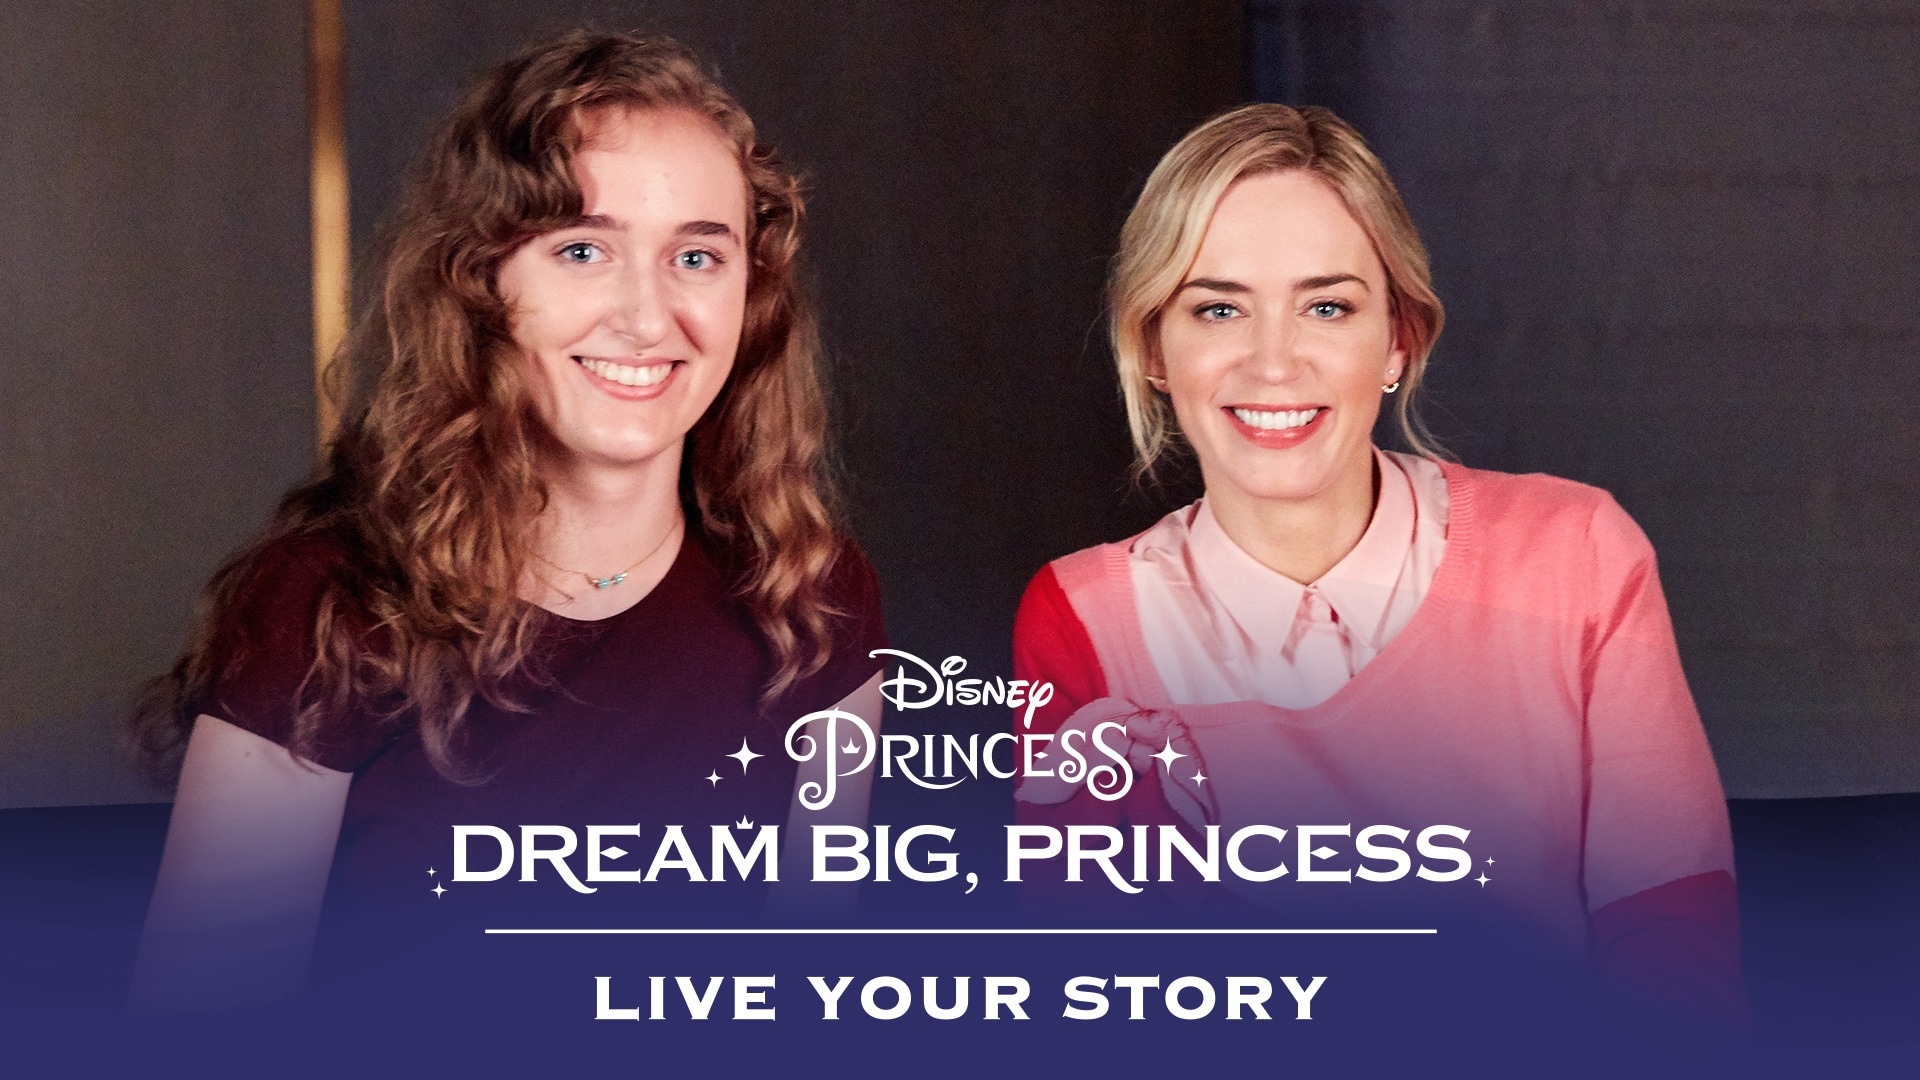 Dream Big, Princess - Marisa Meets Emily Blunt | Disney